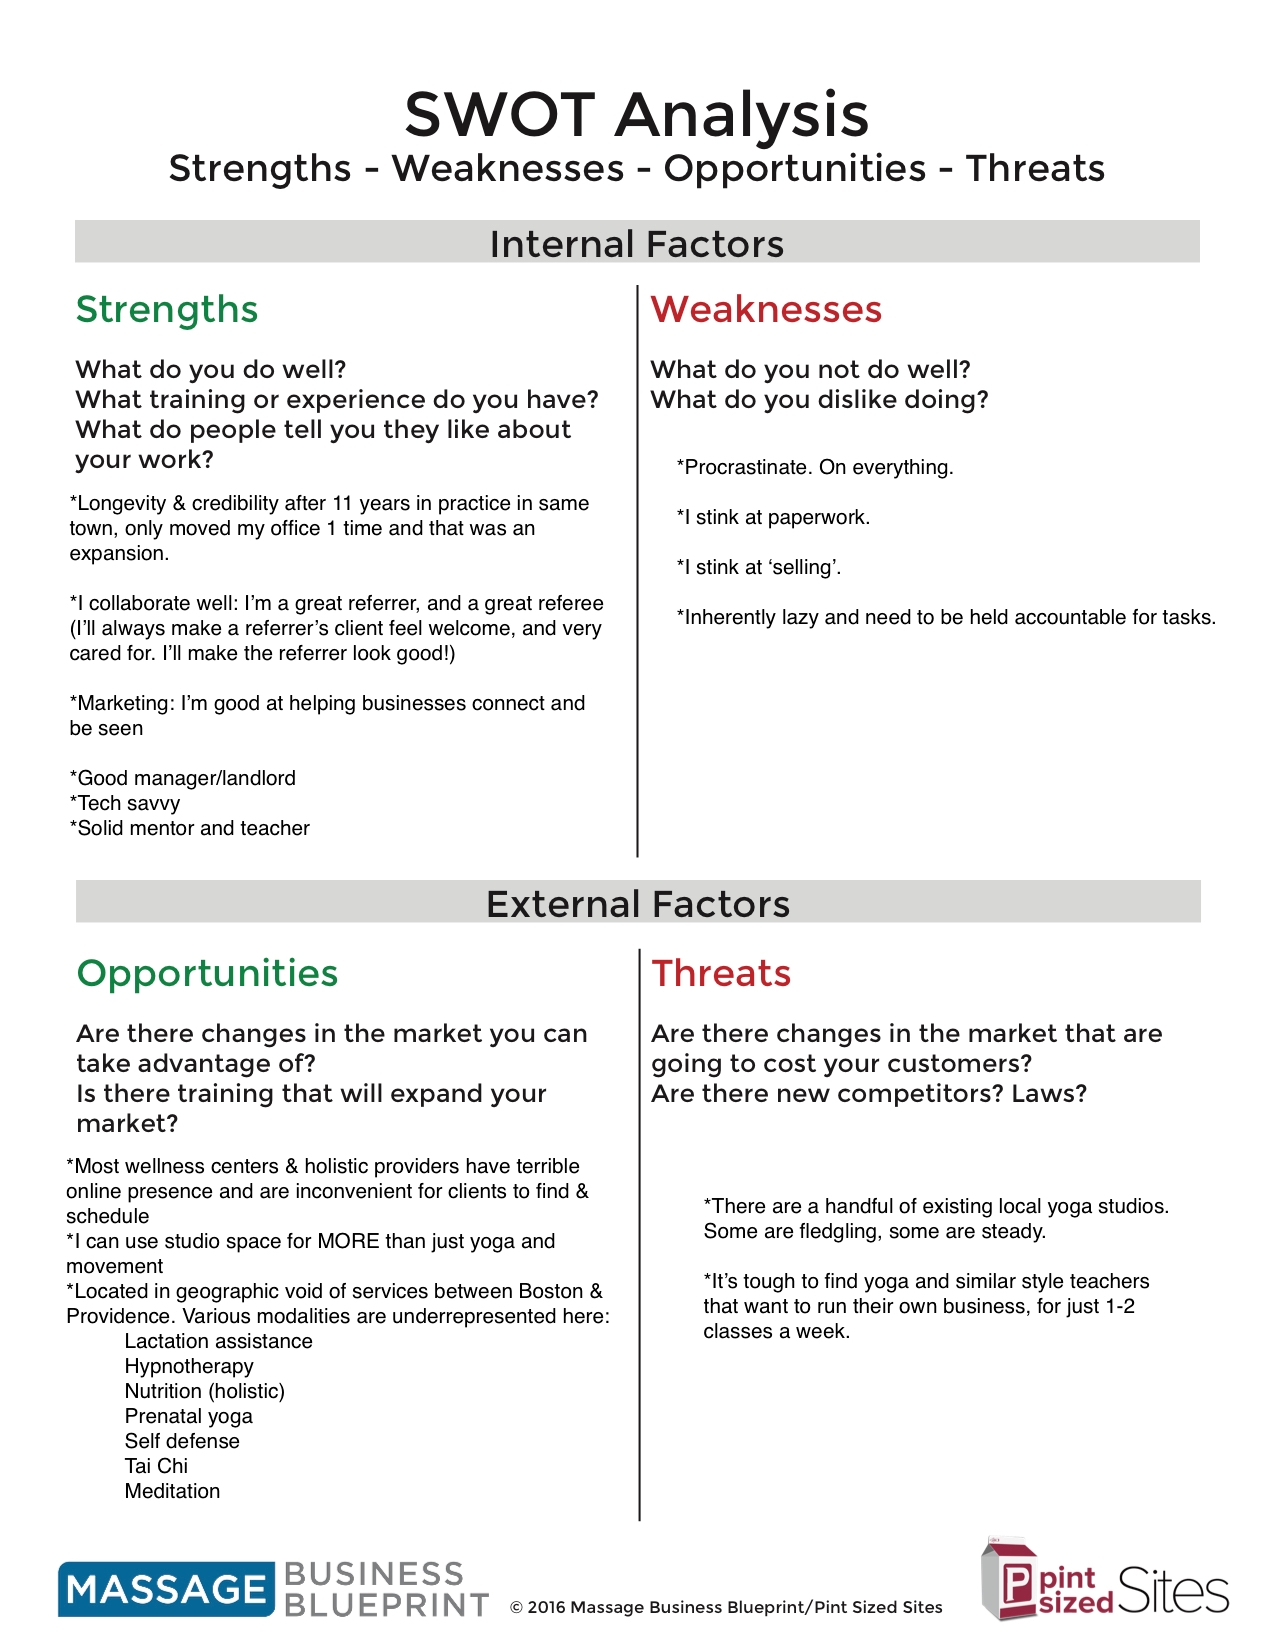 10+ Manager SWOT Analysis Examples - PDF, Word | Examples